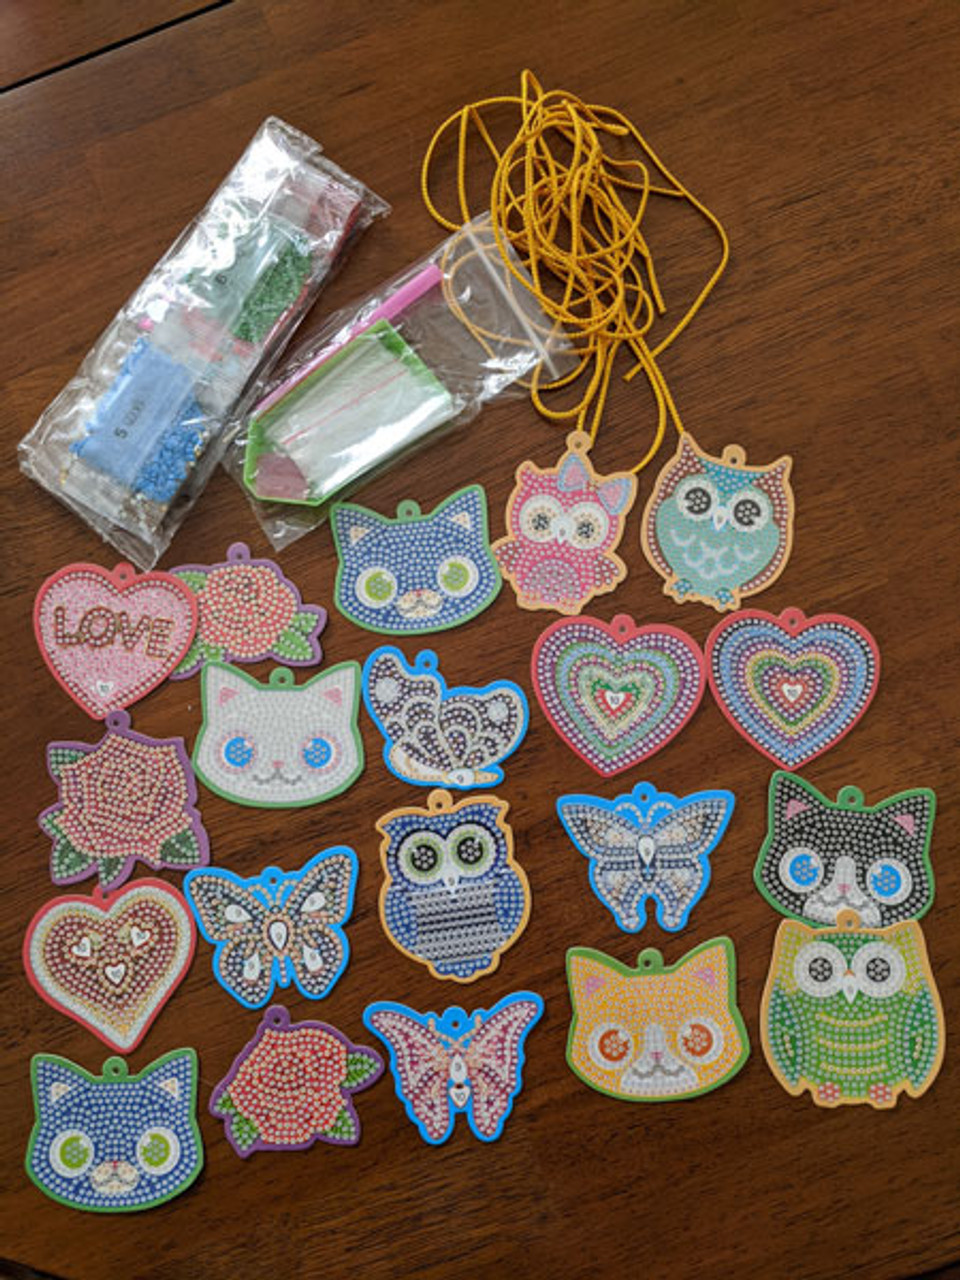 5D DIY Diamond Painting Greeting Tags /Decorations - Mixed Designs 20 Pieces